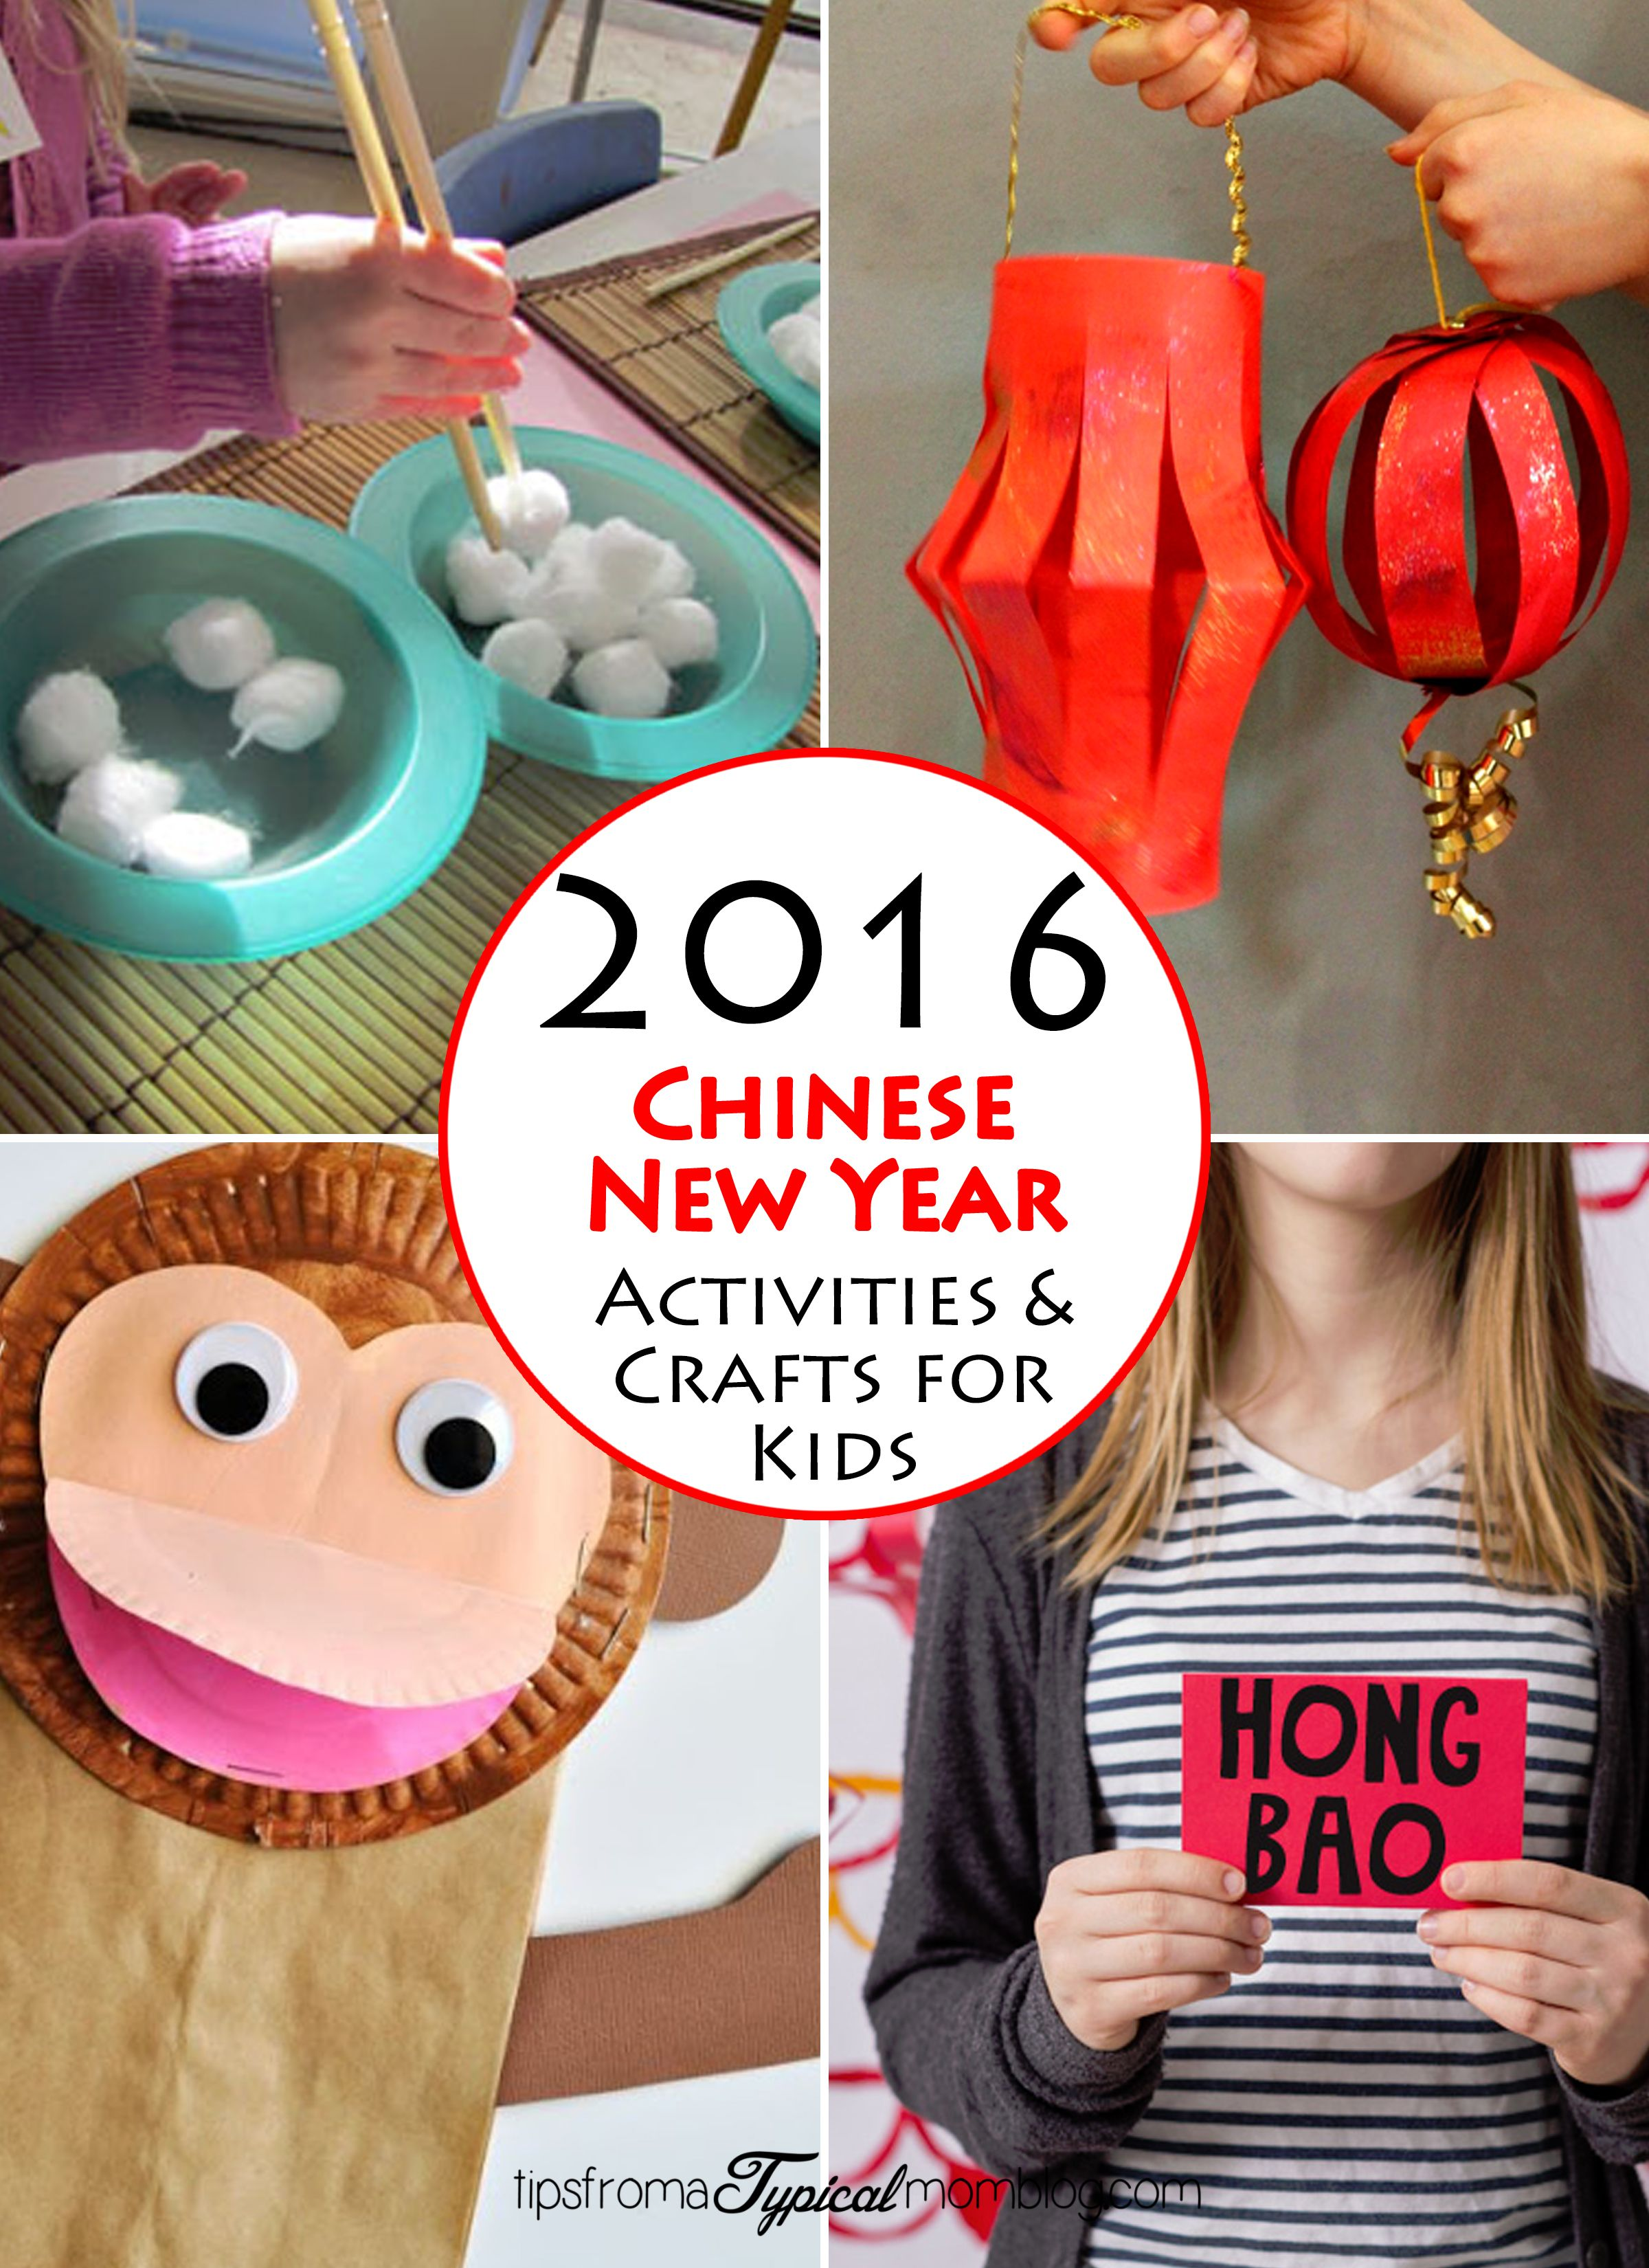 New Year Craft Ideas For Kids Part - 43: 2016 Chinese New Year Crafts For Kids